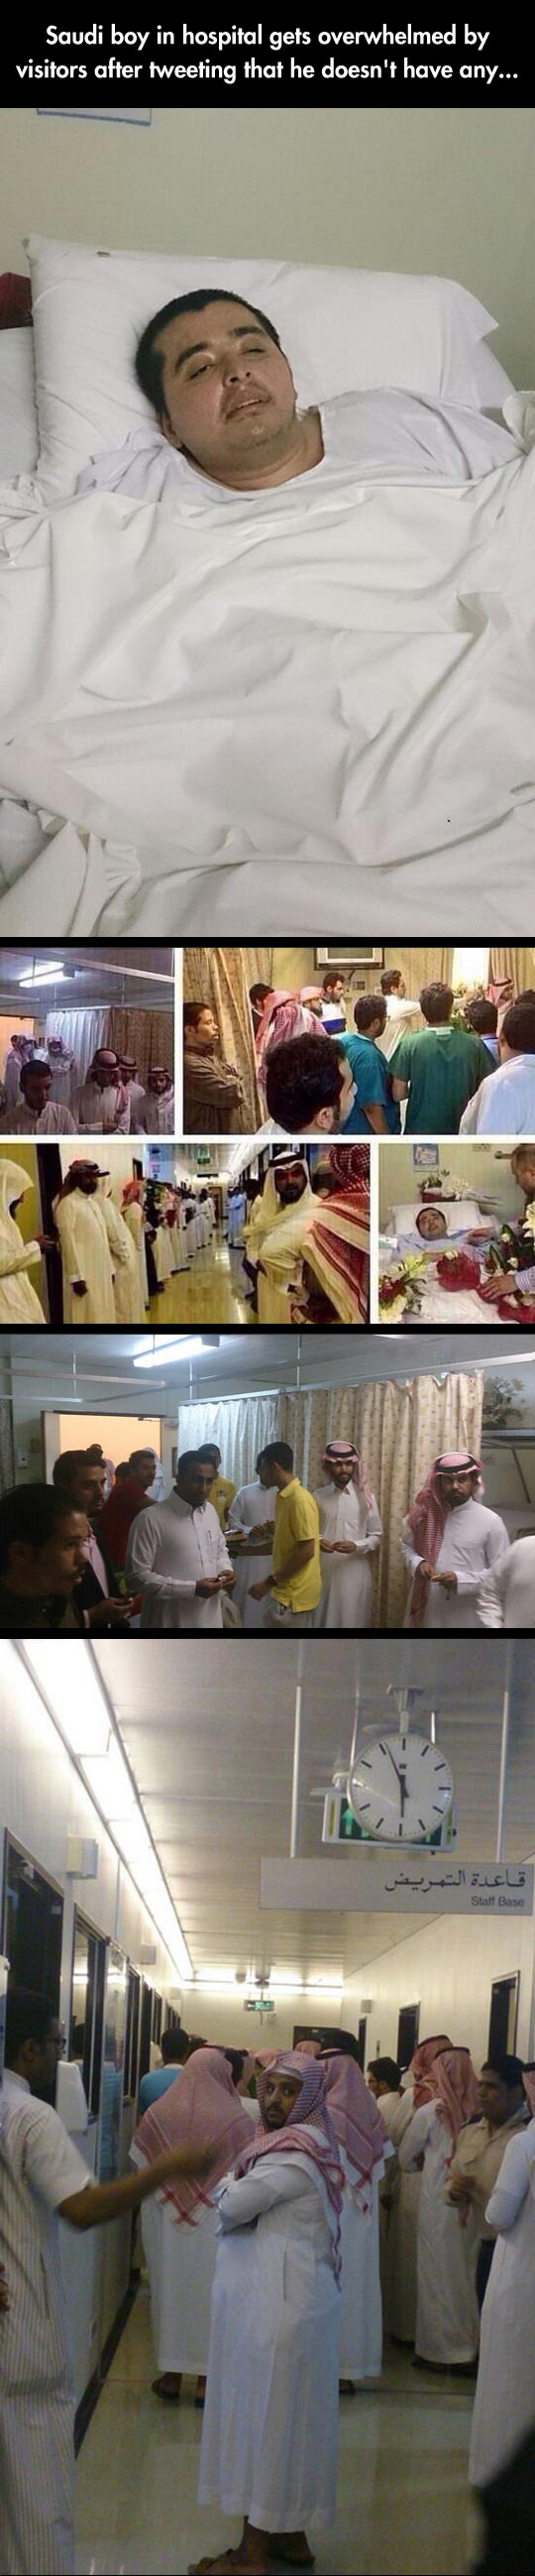 Lonely Saudi Boy In Hospital Gets A Big Surprise